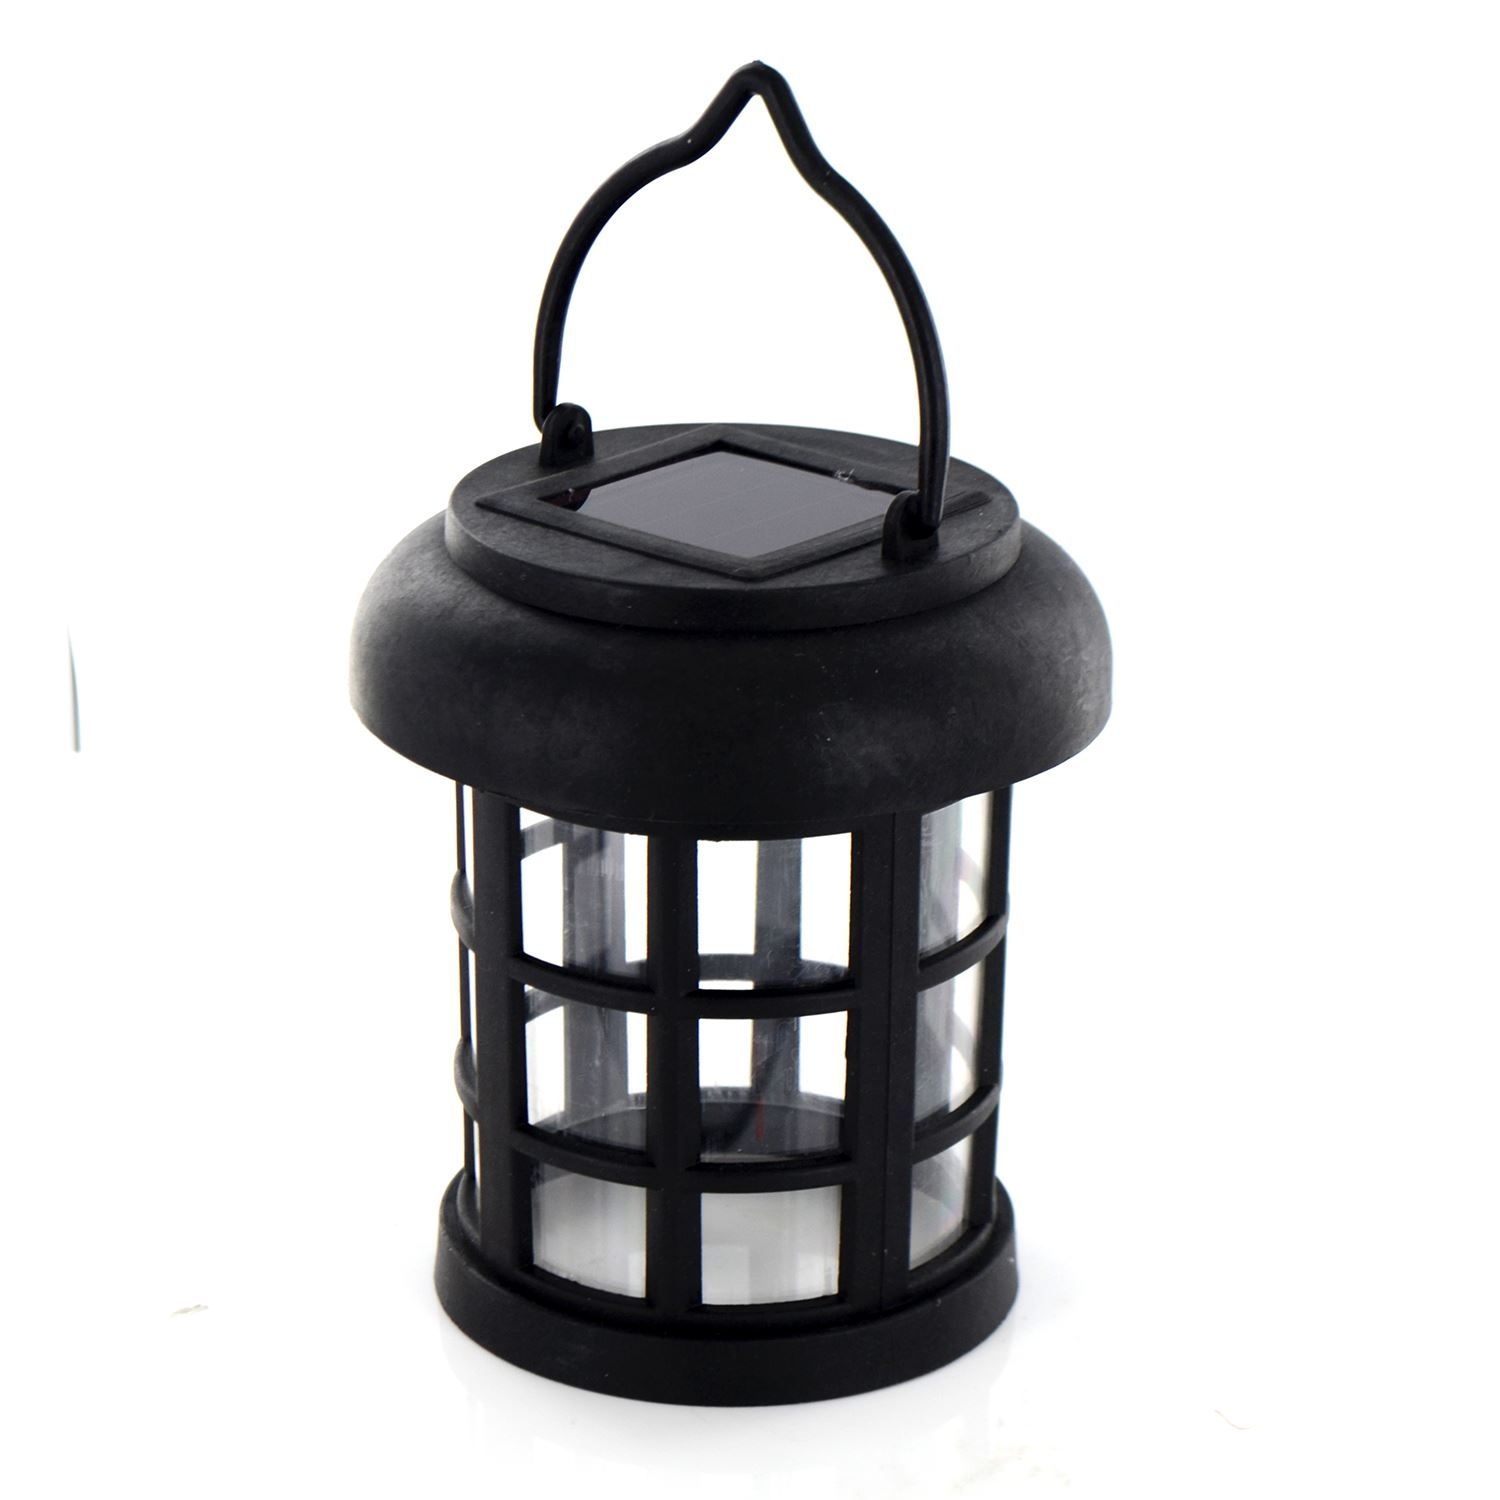 Merveilleux Solar Powered LED Hanging Garden Lantern Rechargeable Outdoor